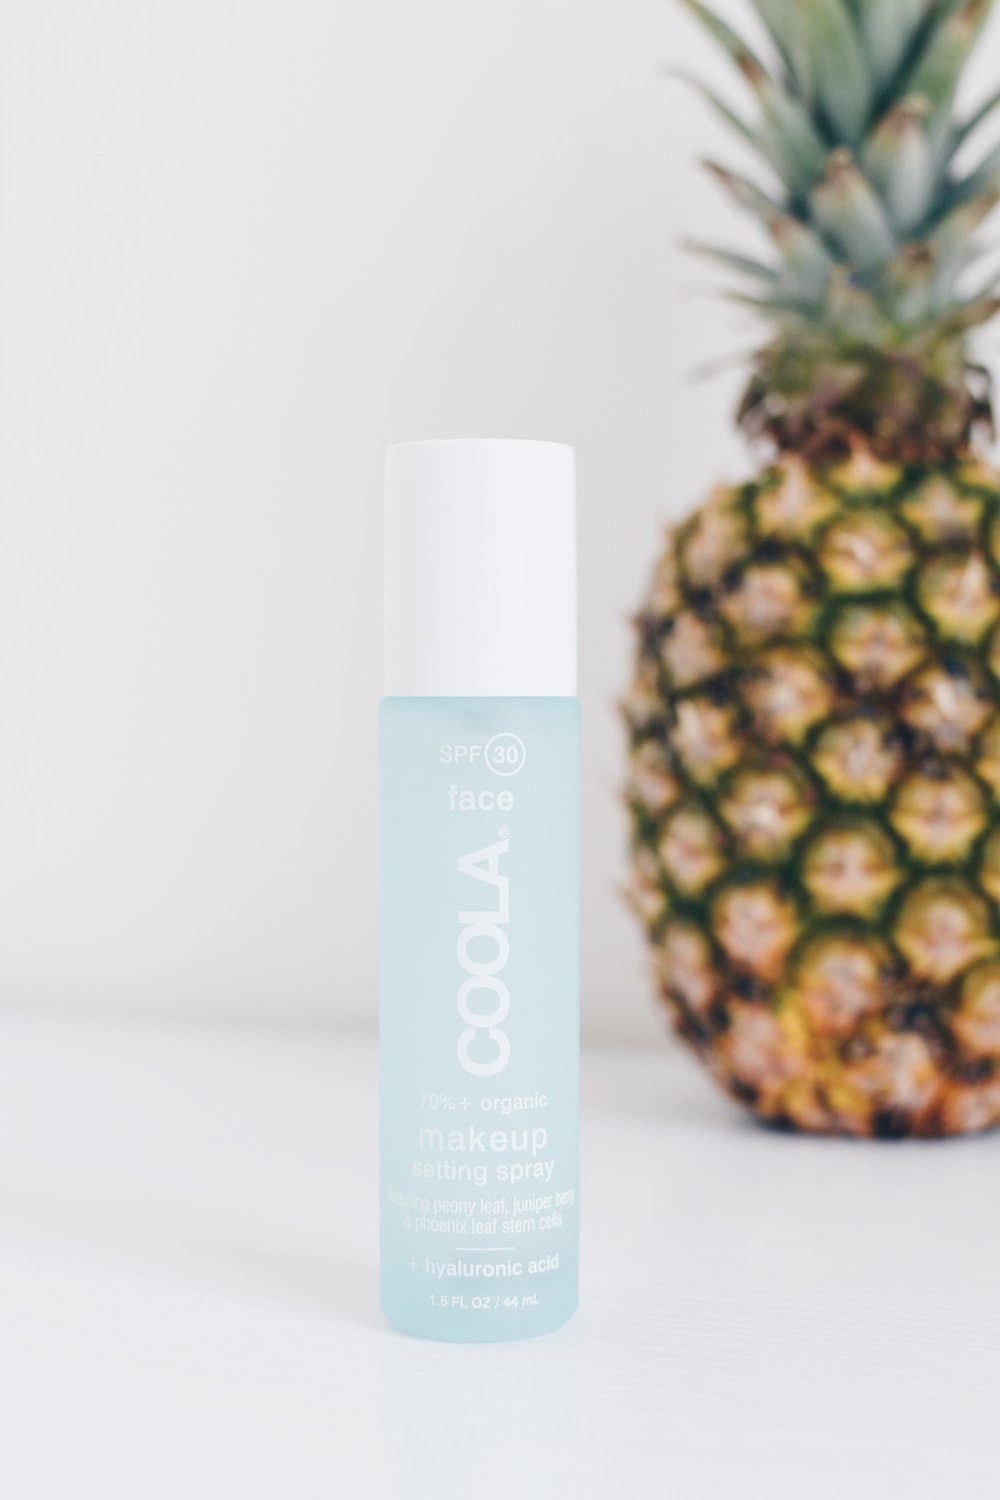 Coola Suncare Makeup Setting Spray Review